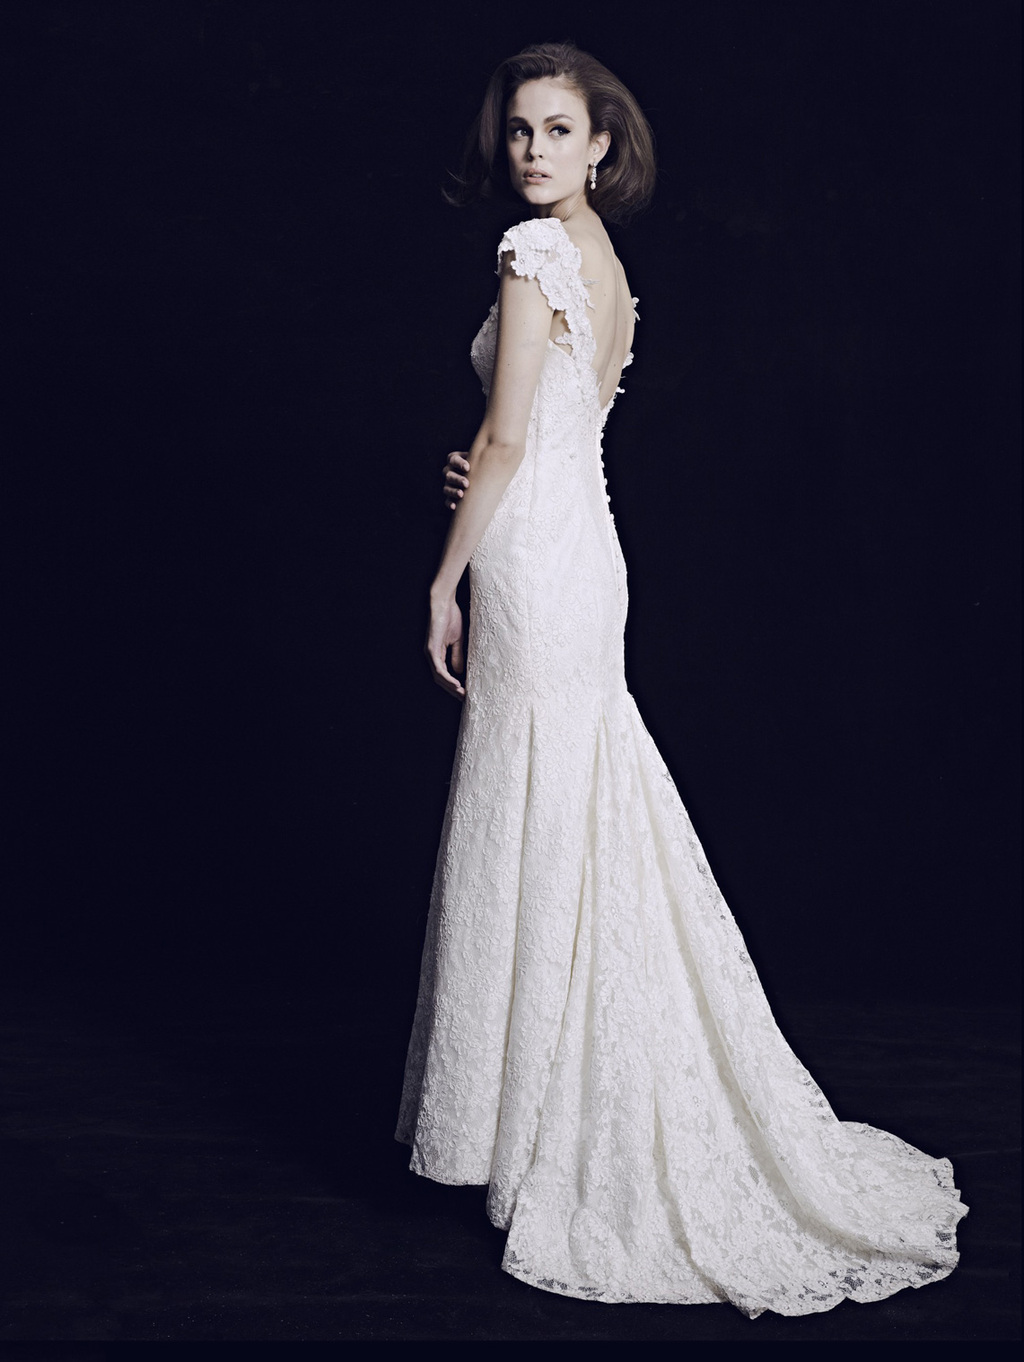 Mariana-hardwick-wedding-dress-2013-bridal-classic-13.full